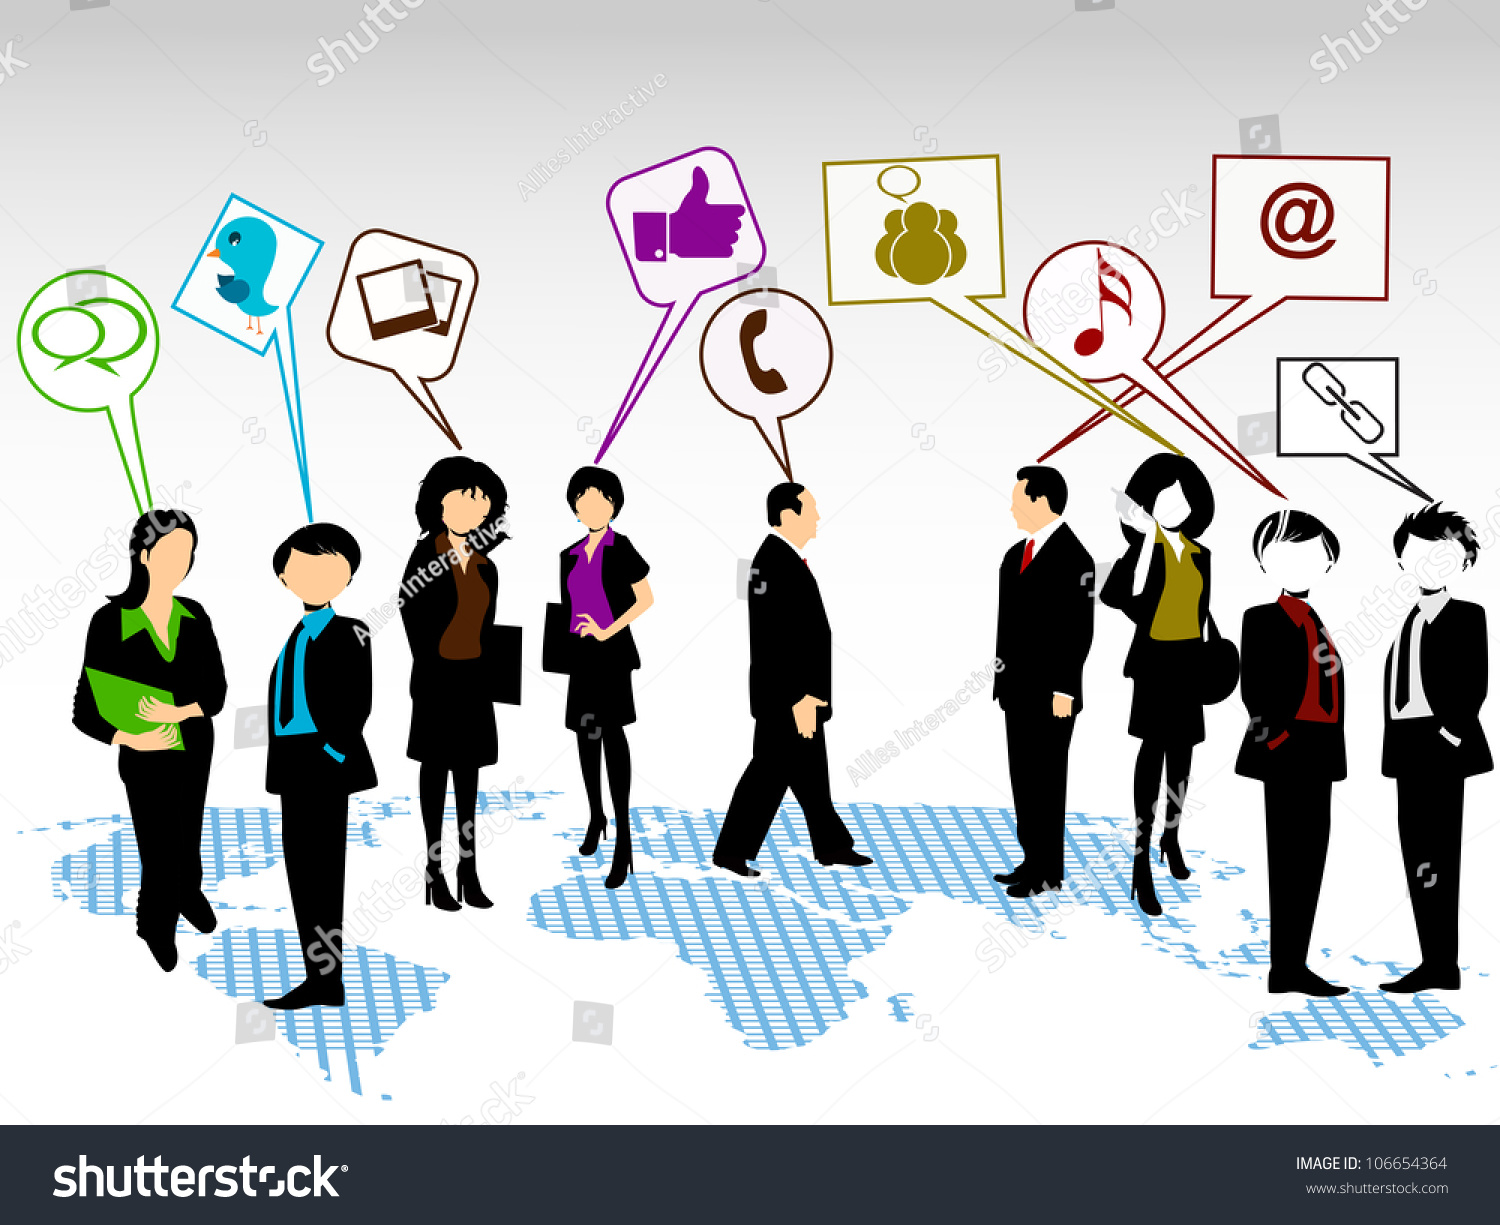 social networking 3d peoples connect social stock vector 106654364 social networking 3d peoples connect social network eps 10 social networking and social